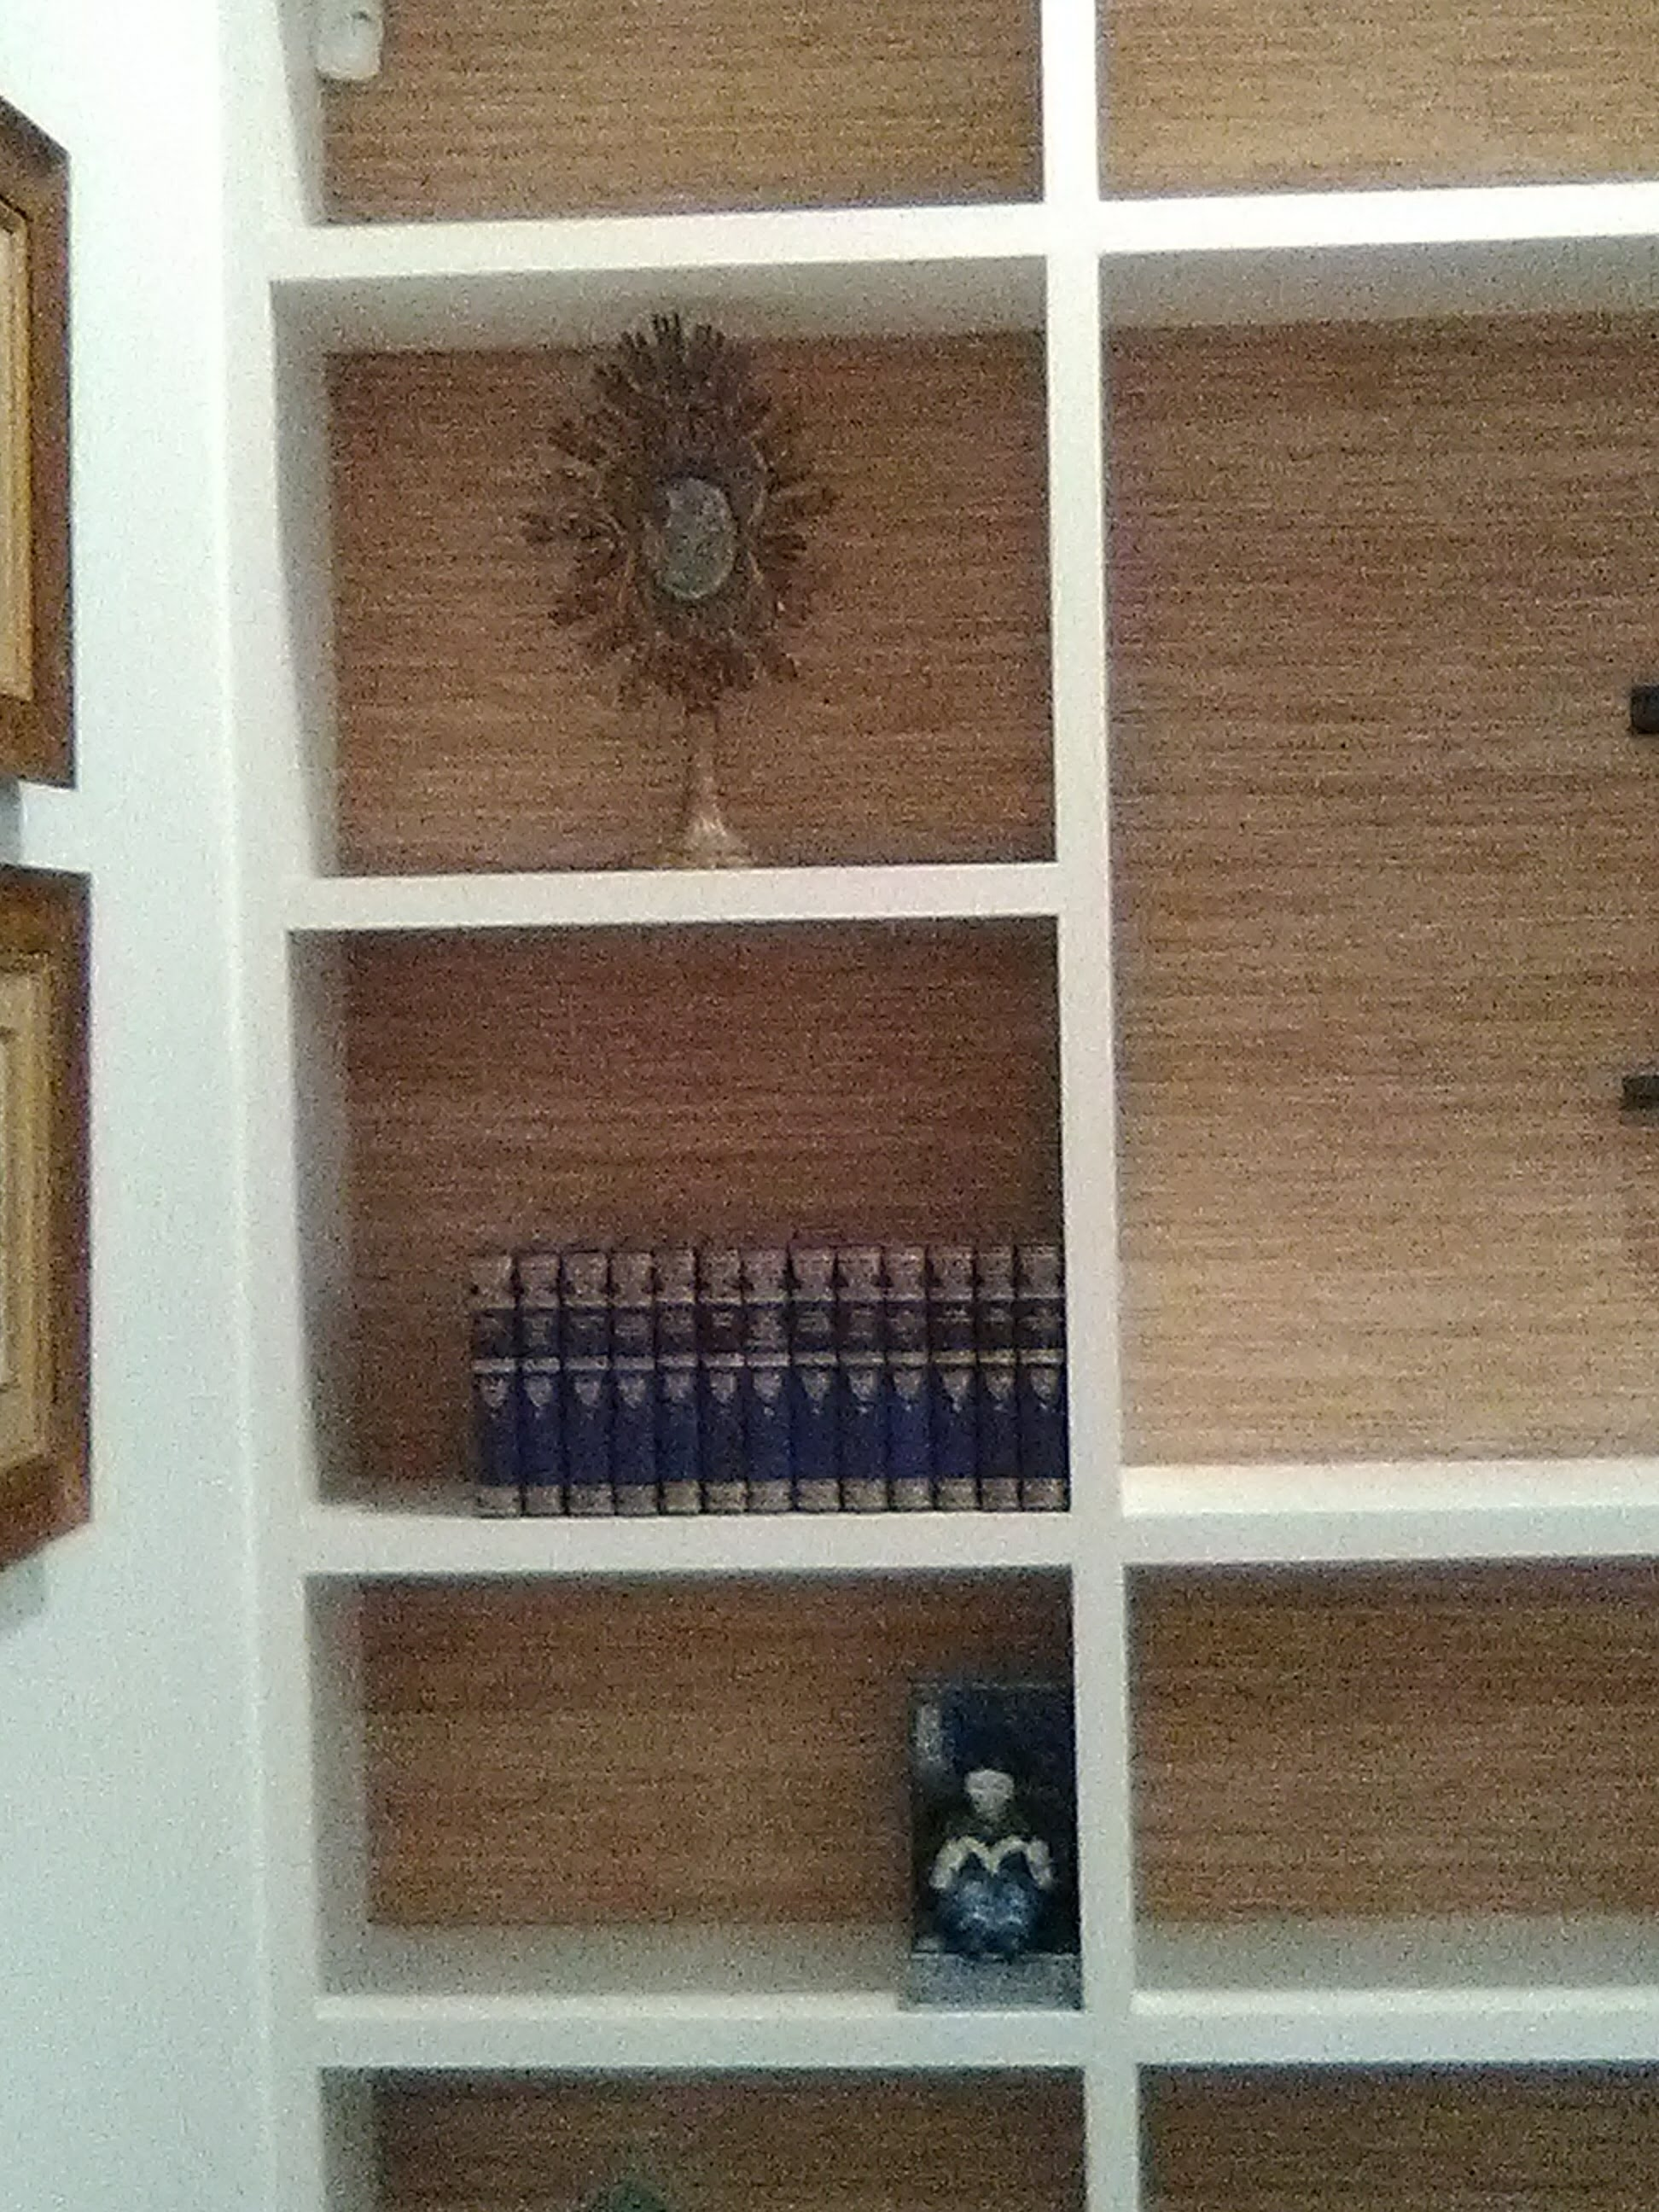 in house with conjunction bookcase tiny stairs together bookshelf books